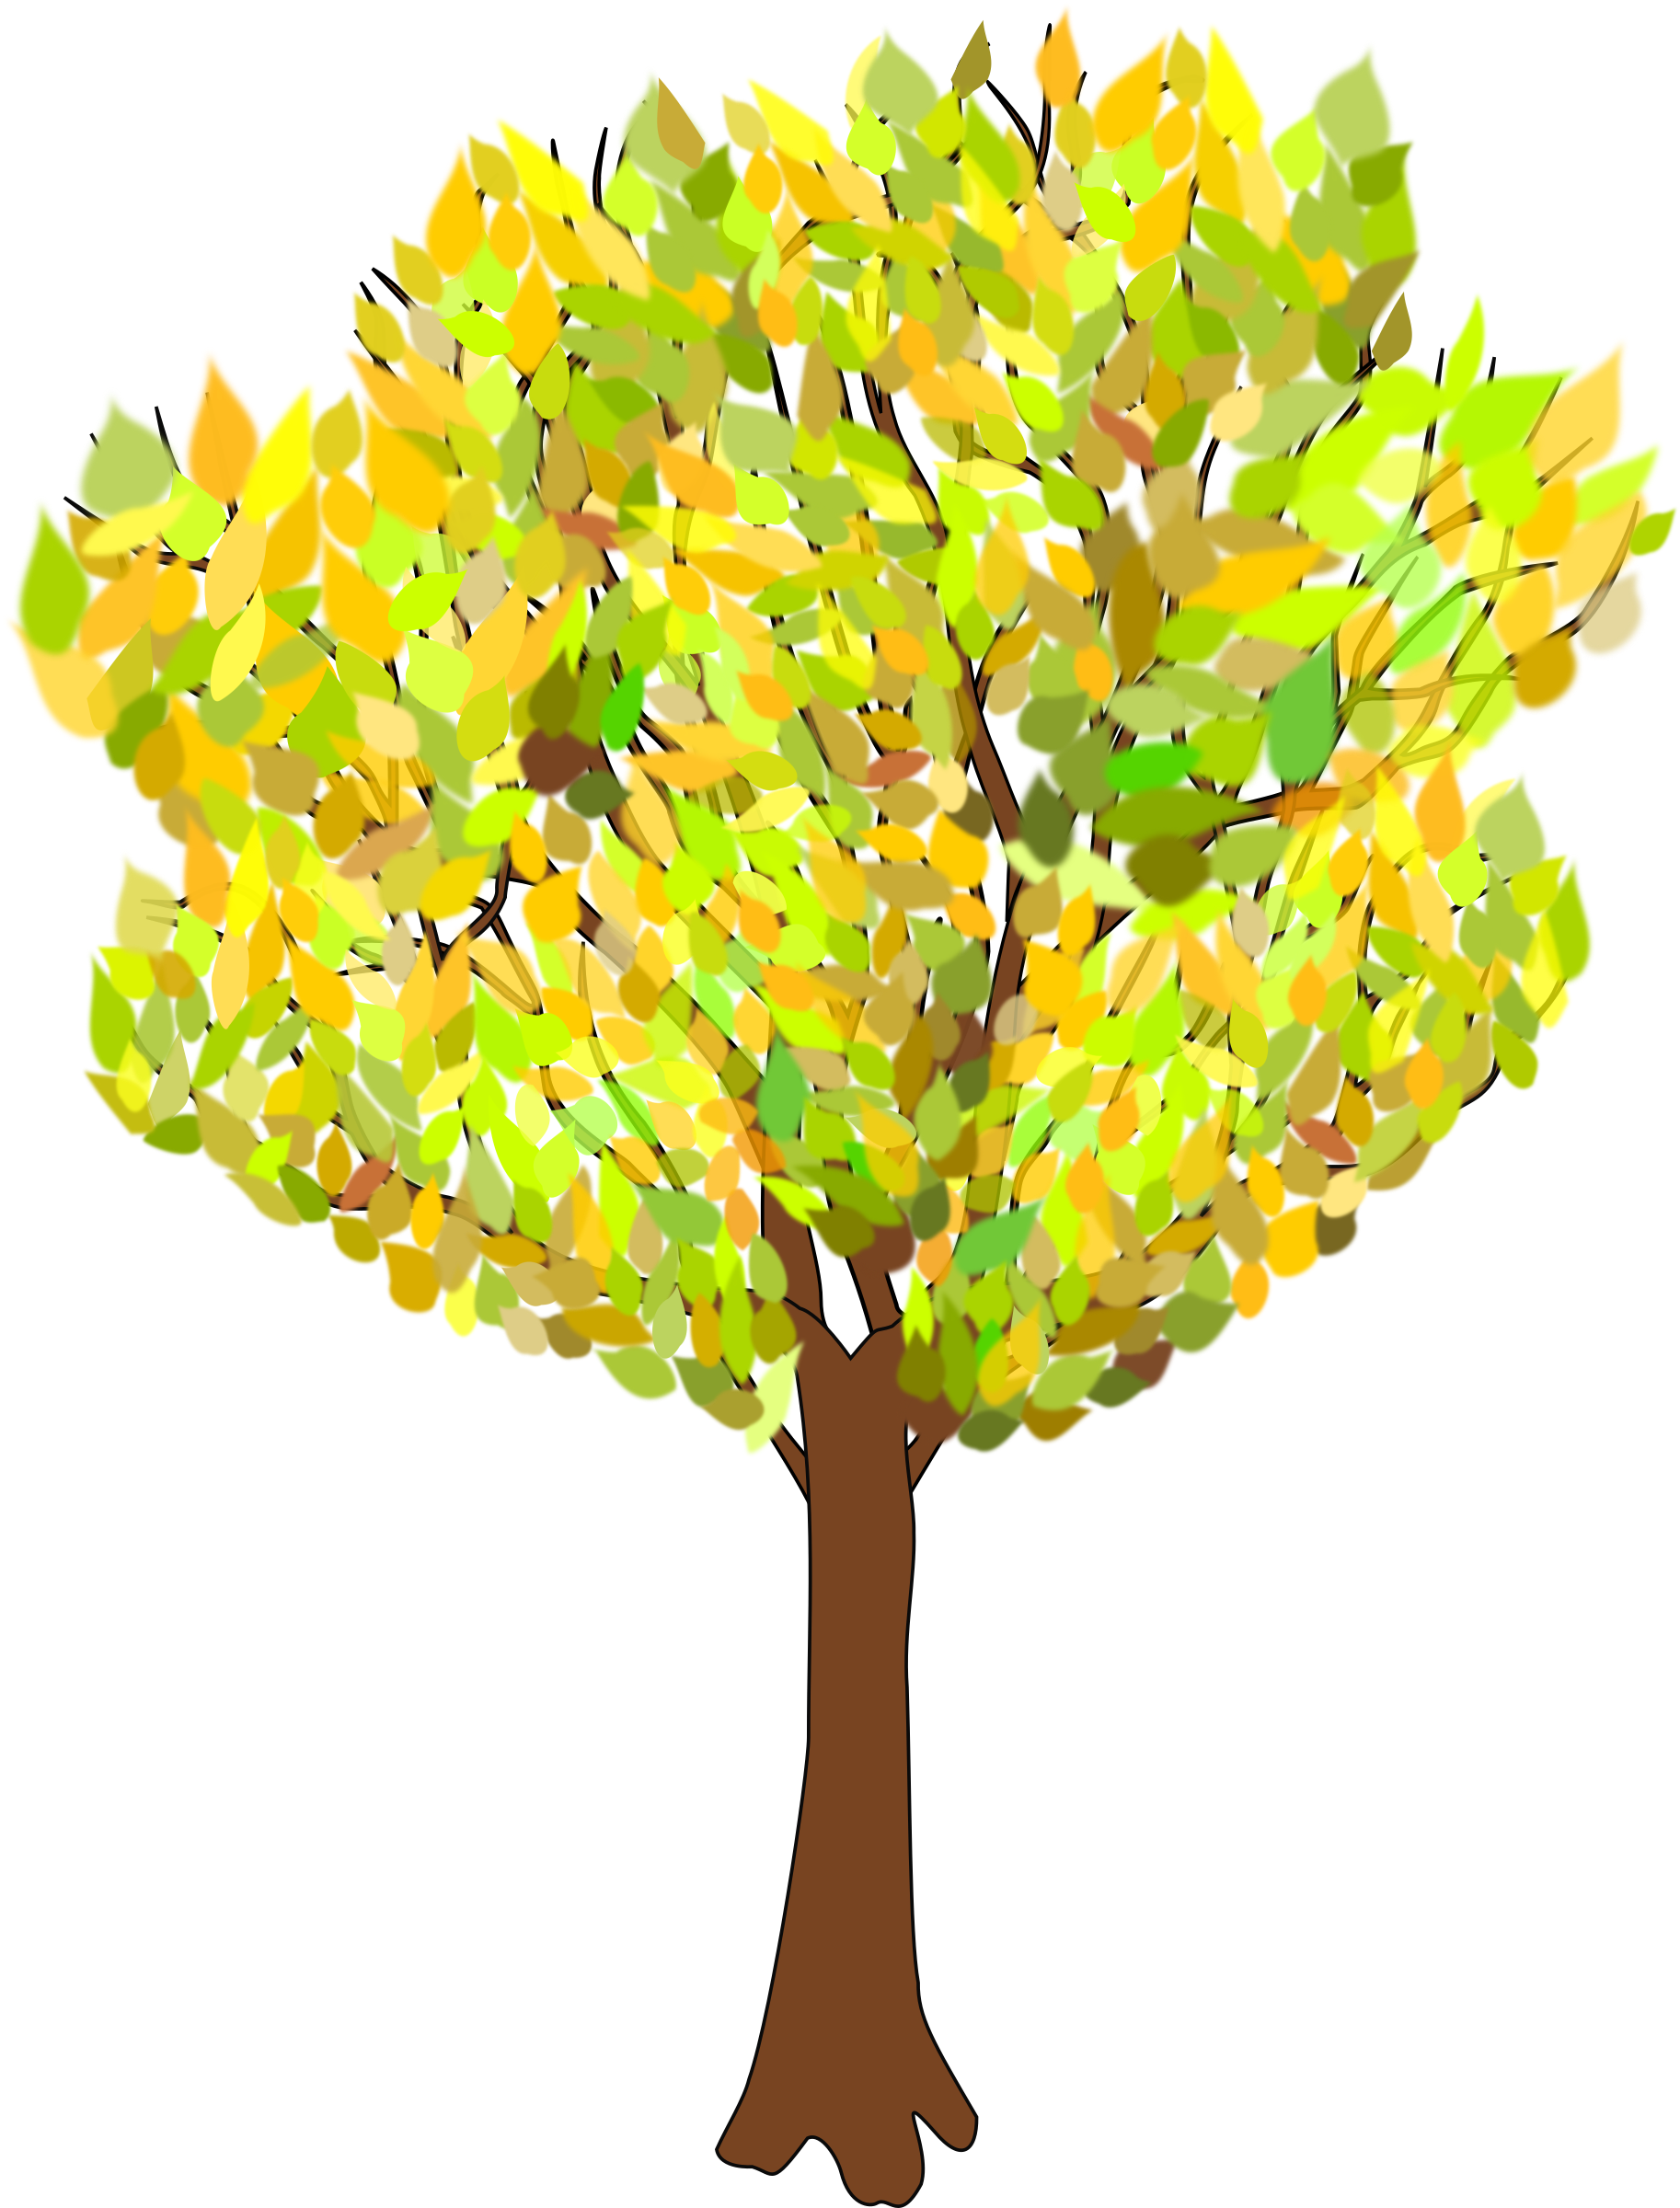 In autumn big image. Fall leaves tree clipart